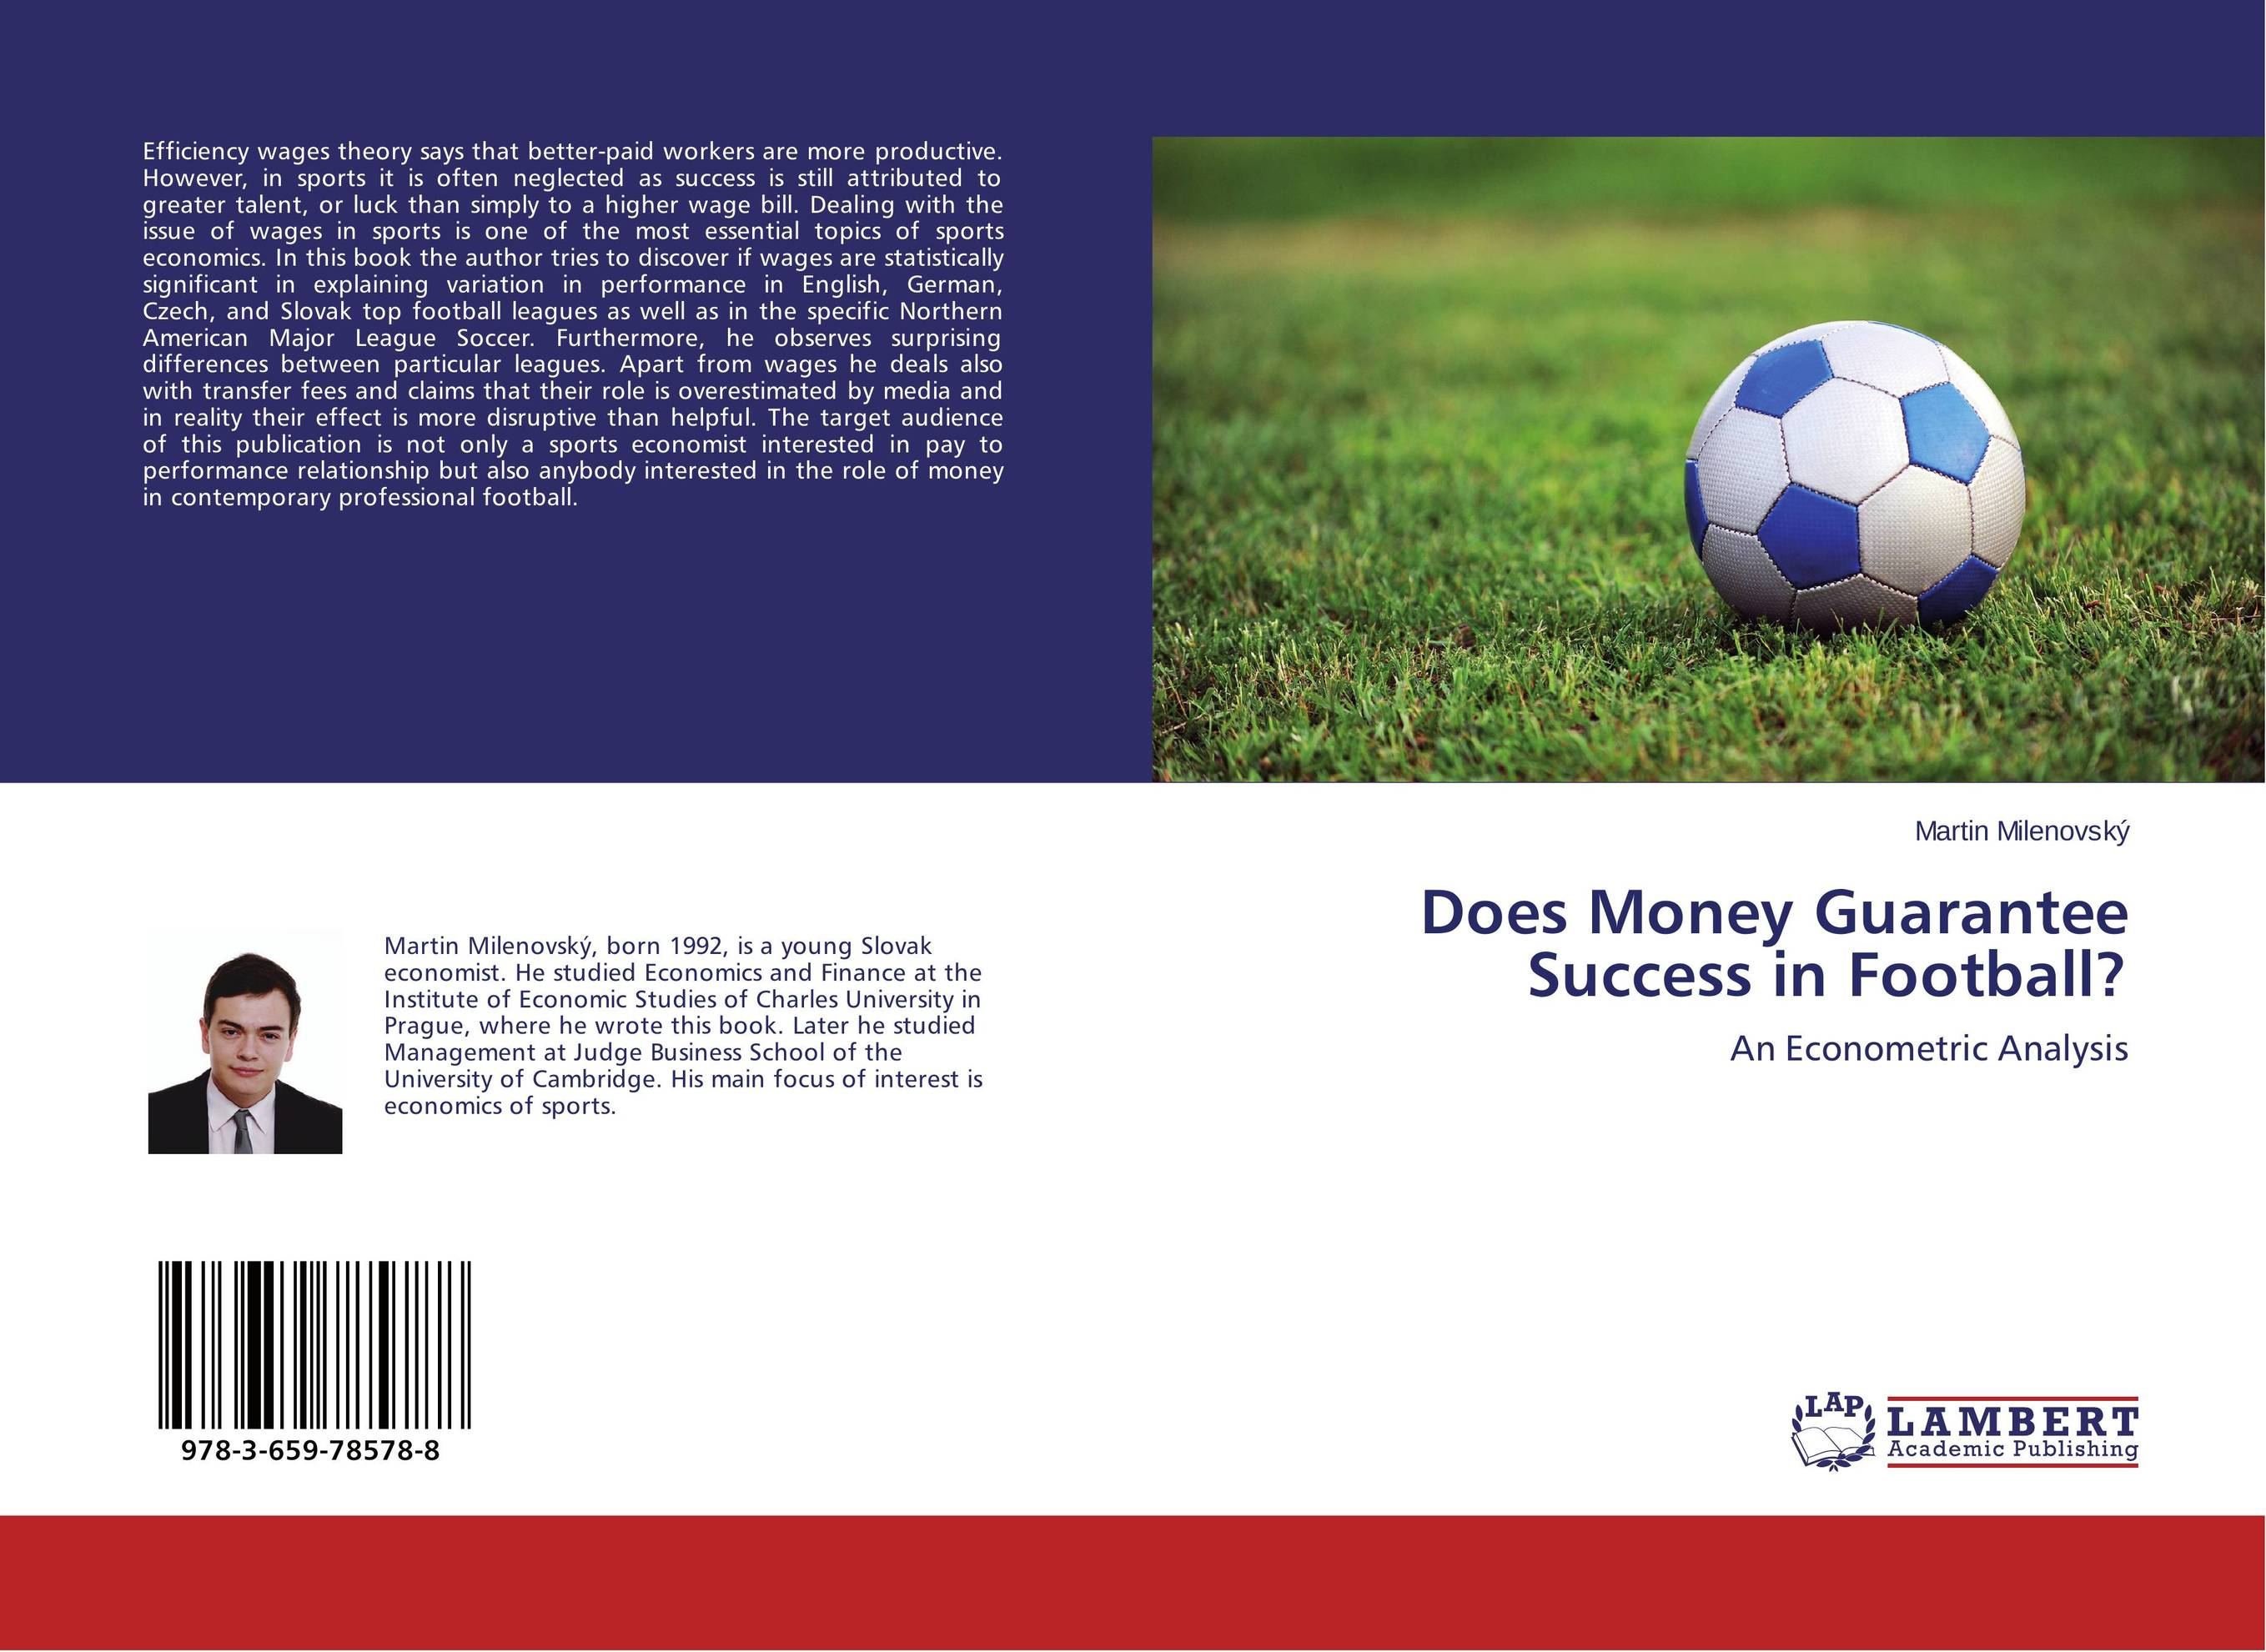 Does Money Guarantee Success in Football?